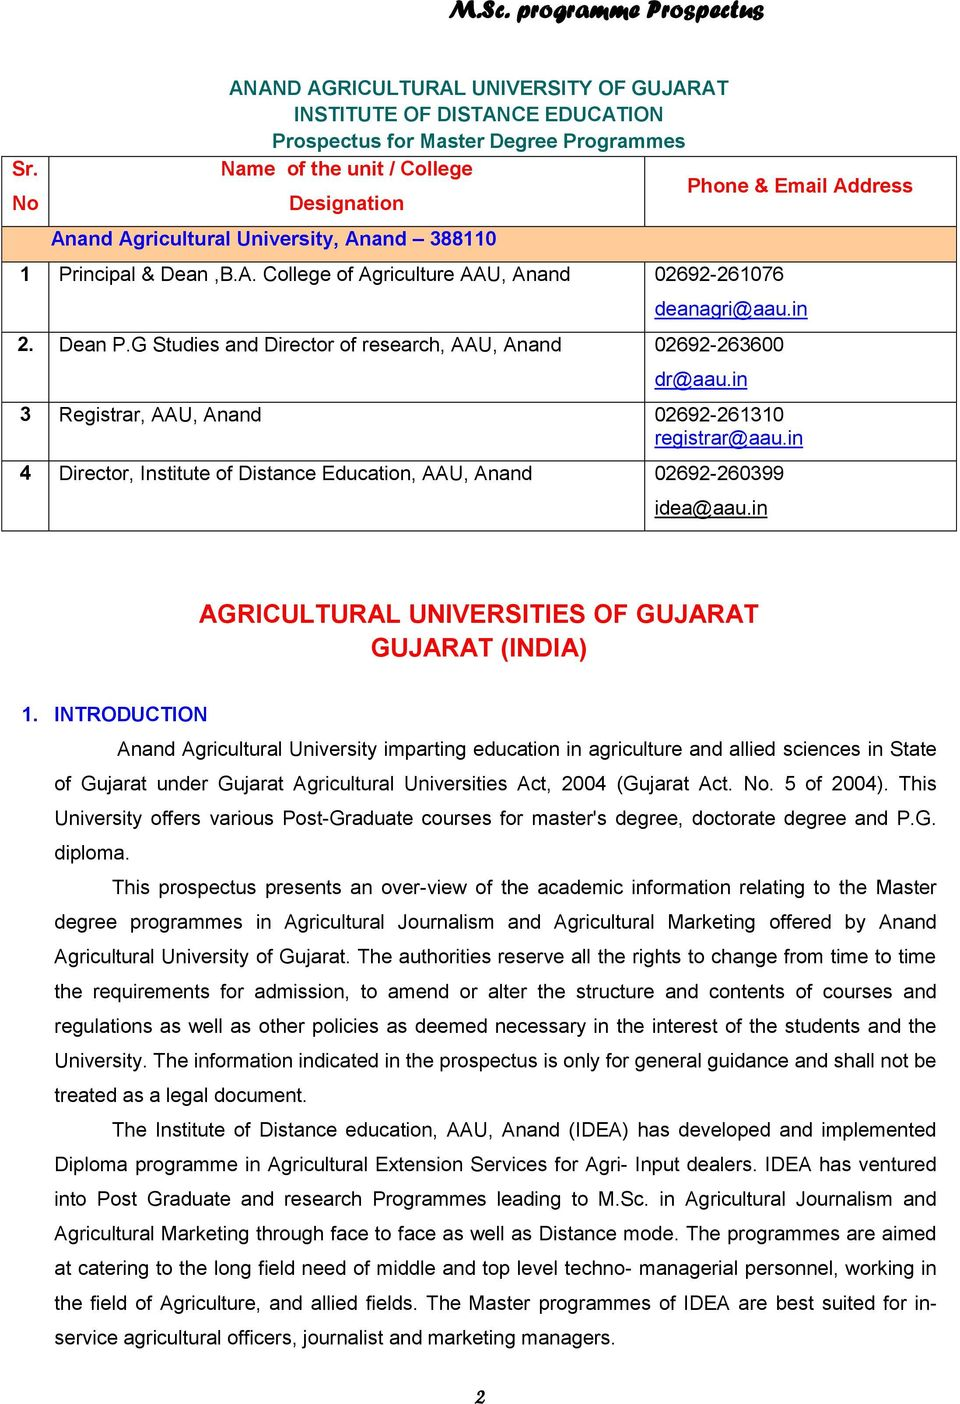 in 3 Registrar, AAU, Anand 02692-261310 registrar@aau.in 4 Director, Institute of Distance Education, AAU, Anand 02692-260399 idea@aau.in AGRICULTURAL UNIVERSITIES OF GUJARAT GUJARAT (INDIA) 1.